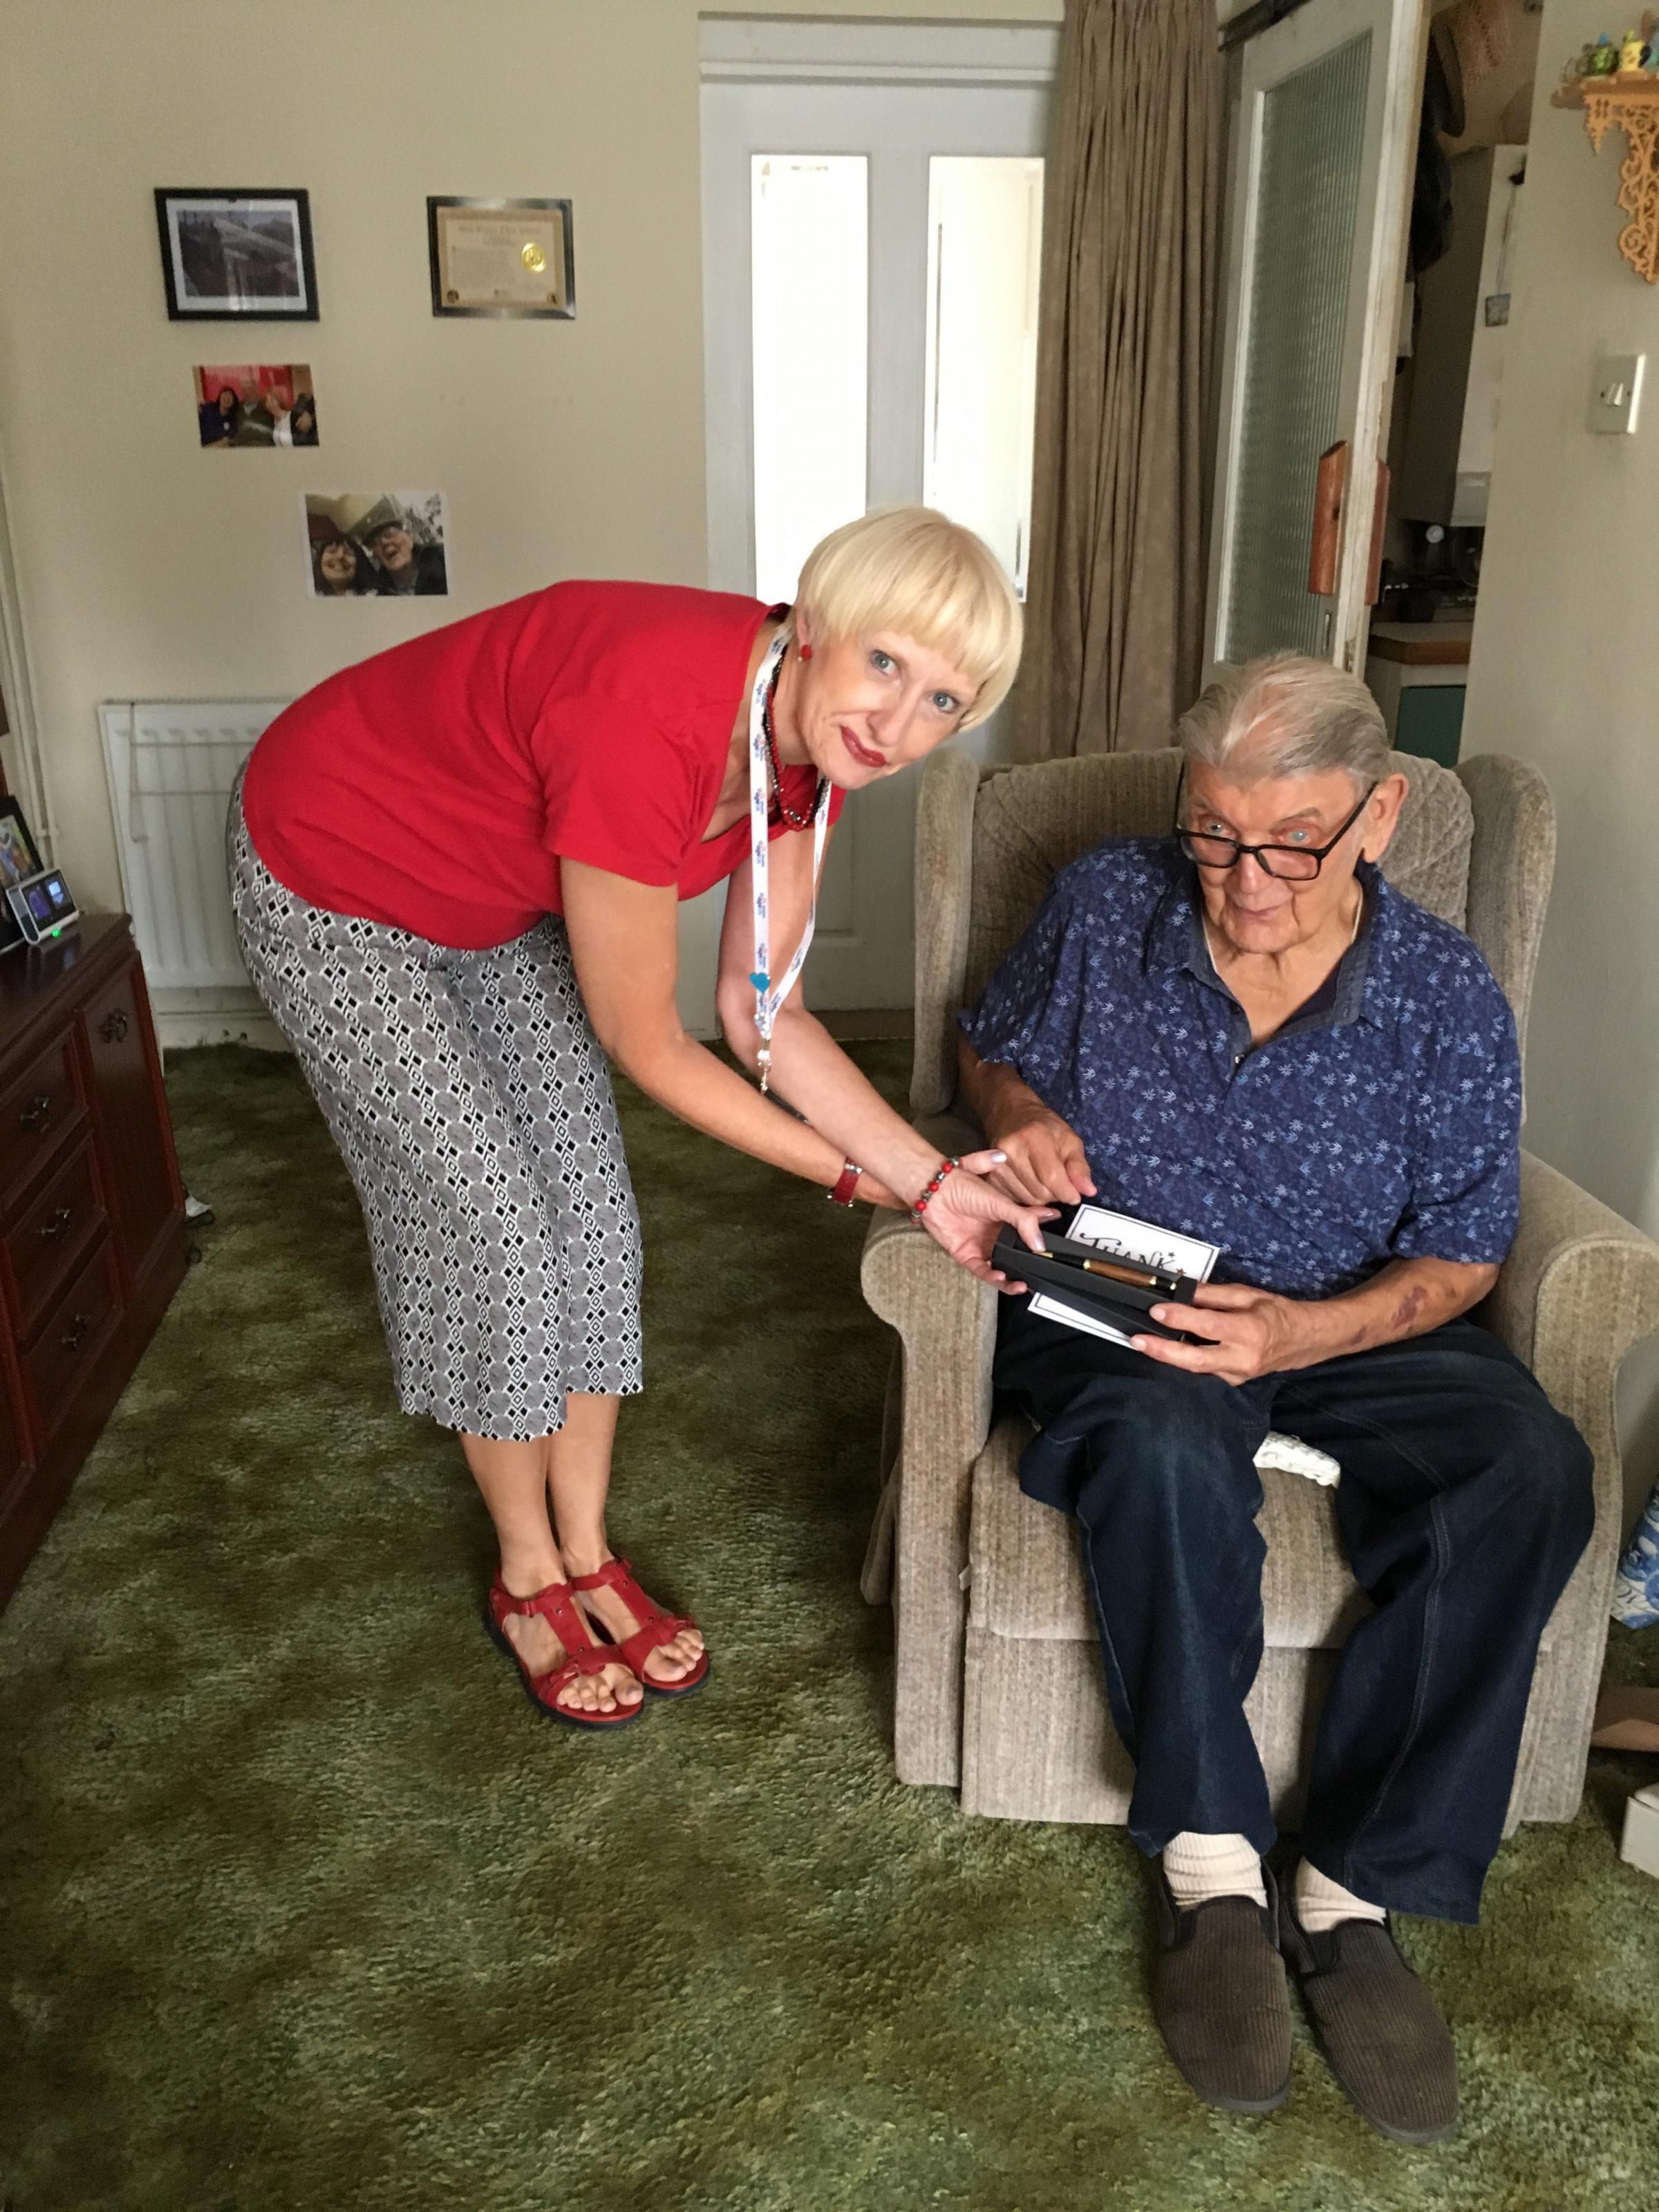 Tracy Etherington, falls prevention co-ordinator for Age UK Cheshire, presents an individually created handmade pen to George Blease